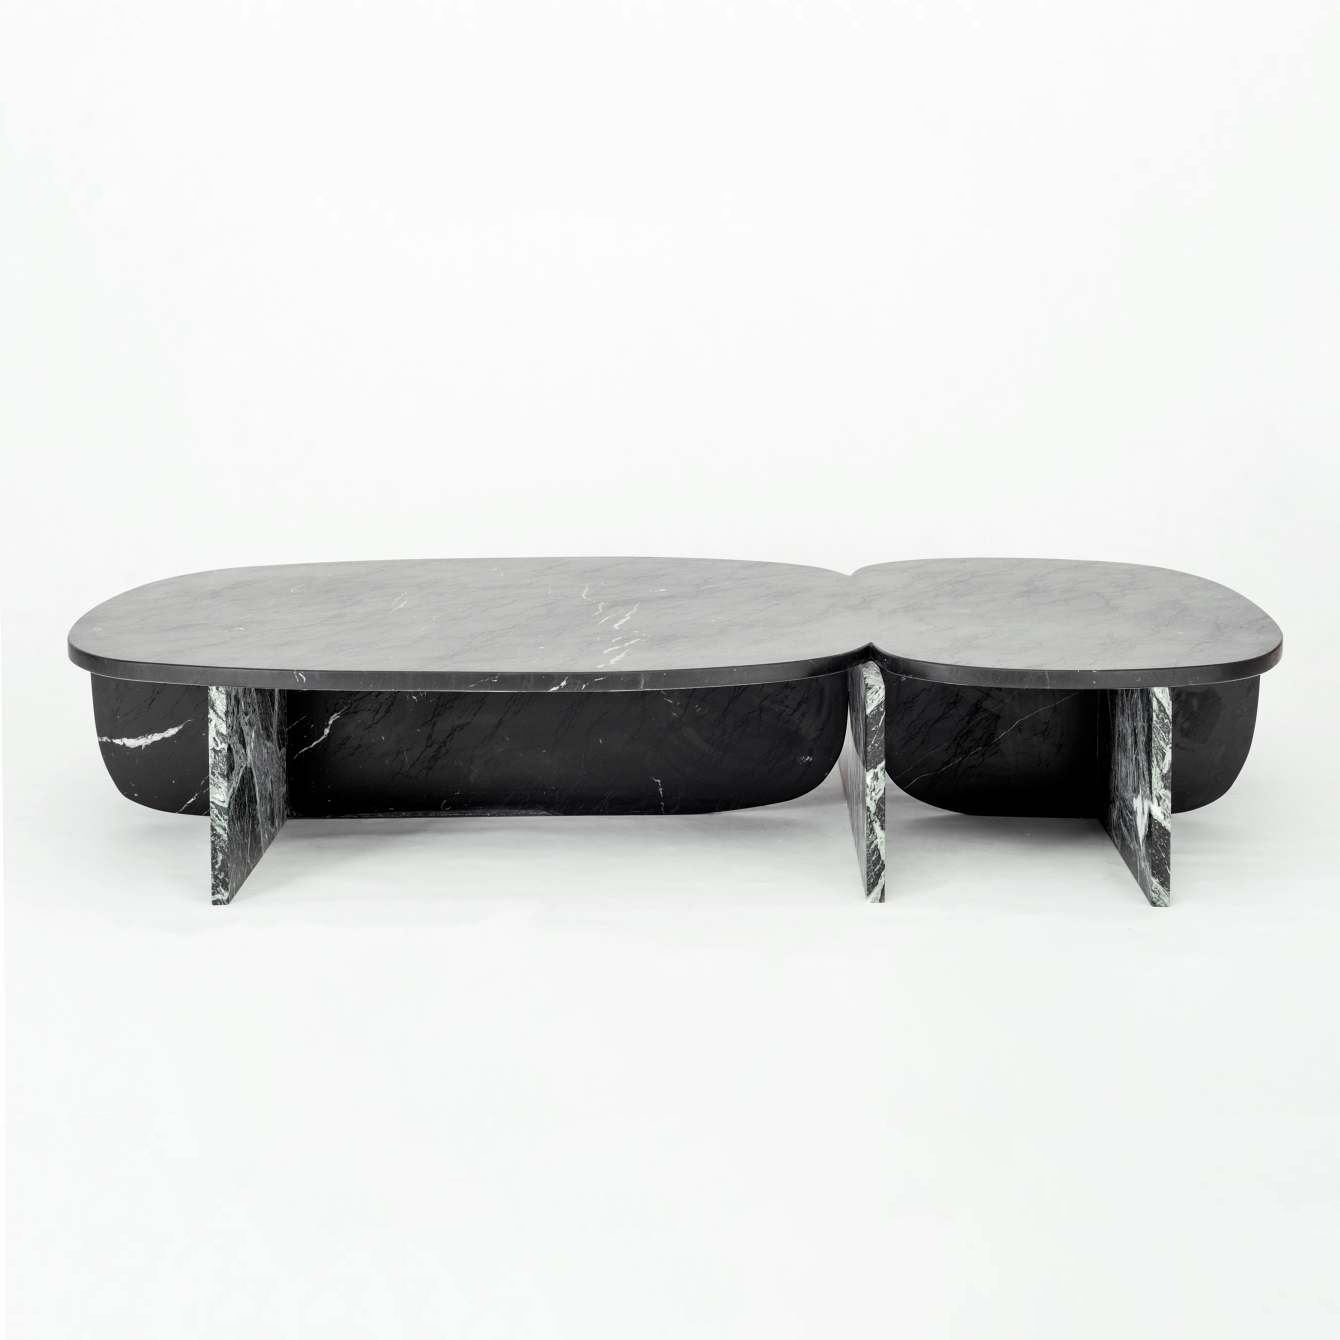 Trilithon Coffee Table by OS ∆ OOS